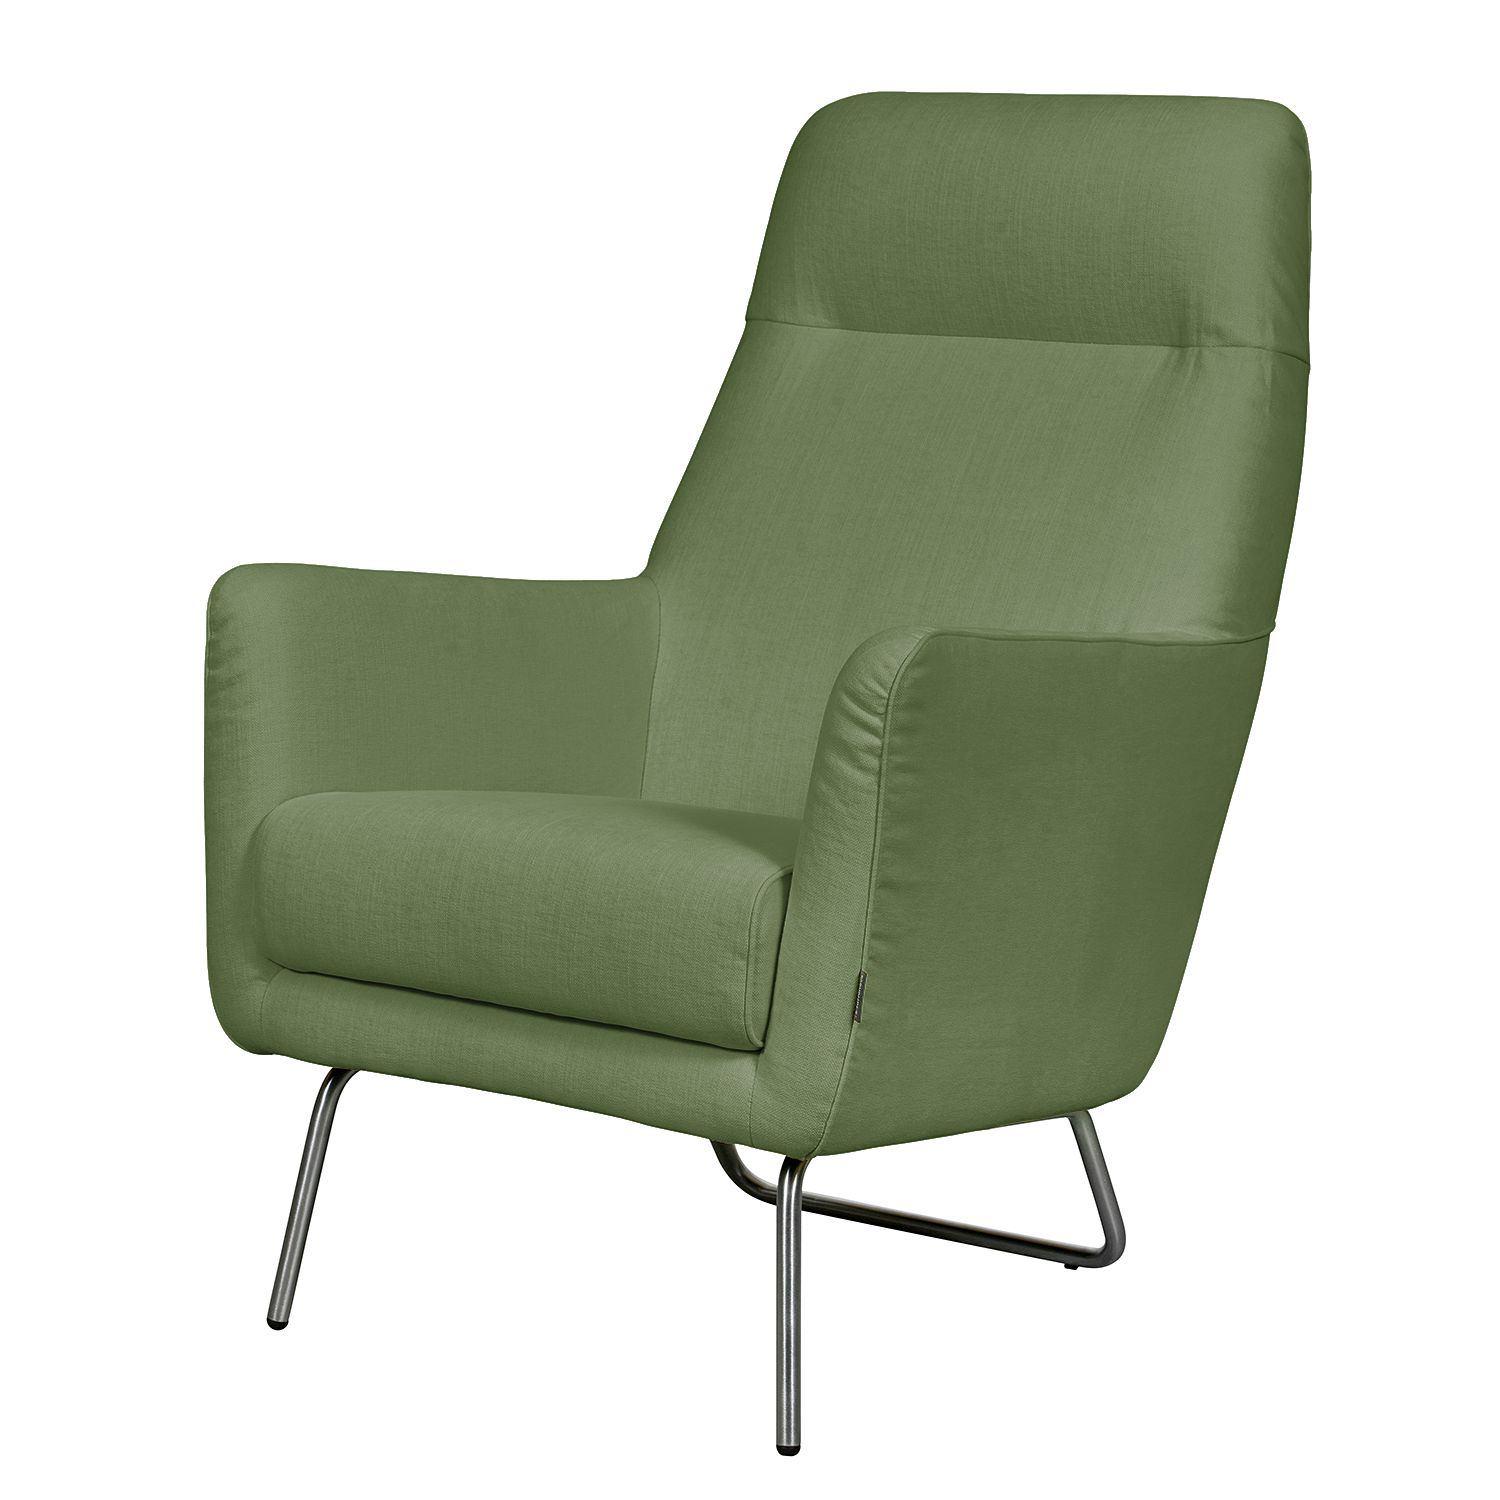 Fauteuil Bebour - Tissu - Vert olive, Says Who